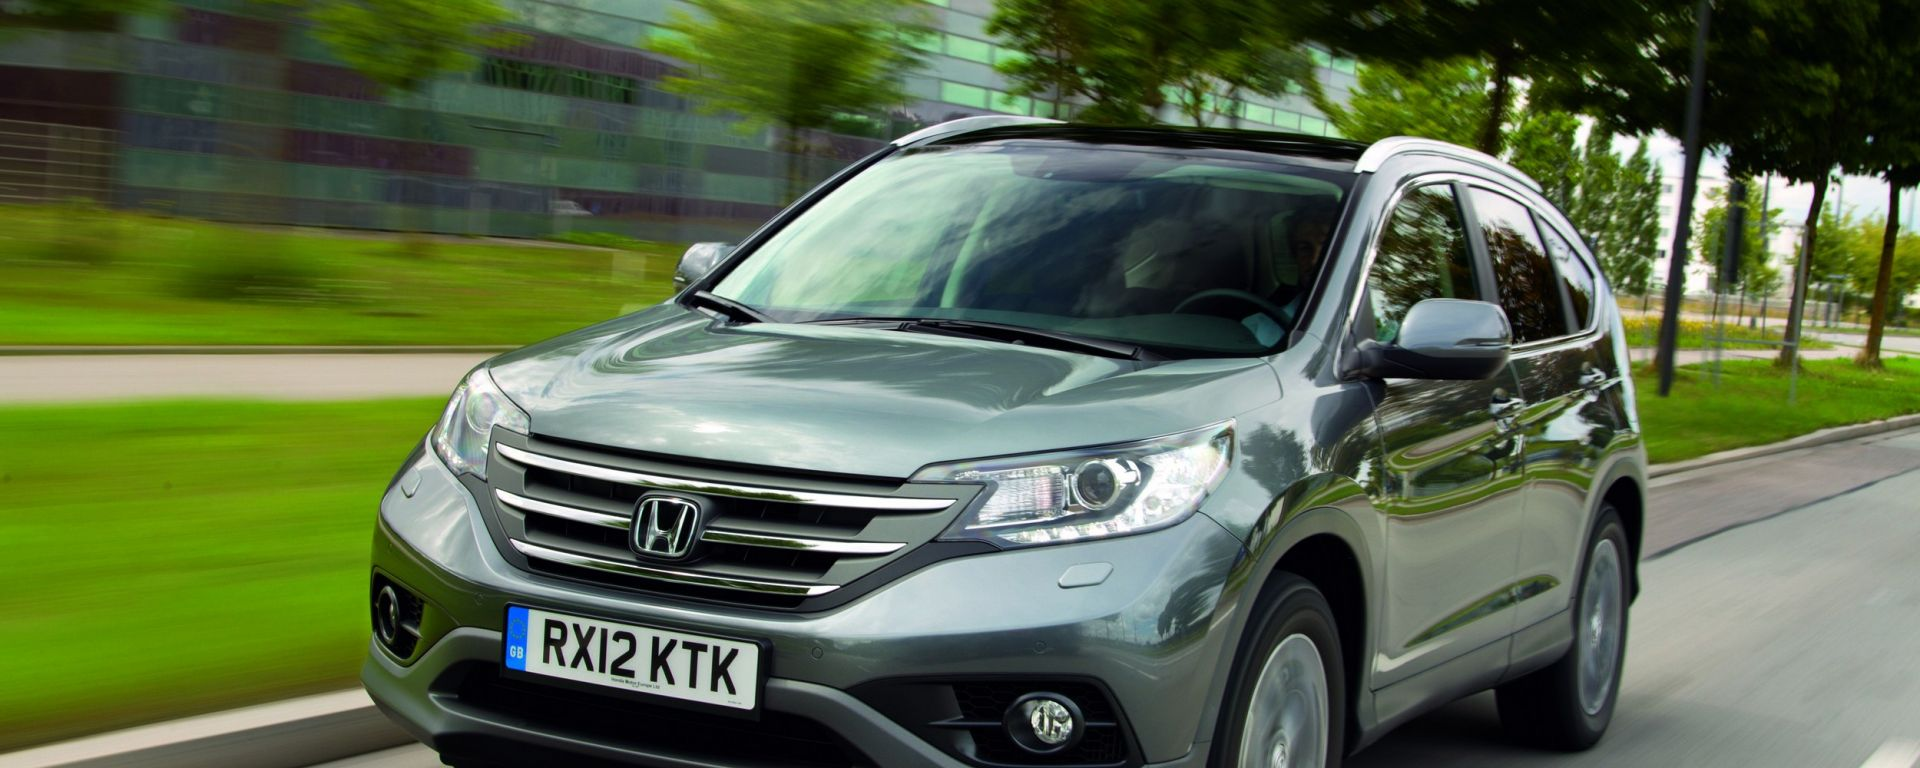 Honda CR-V 2013: dati, foto e video